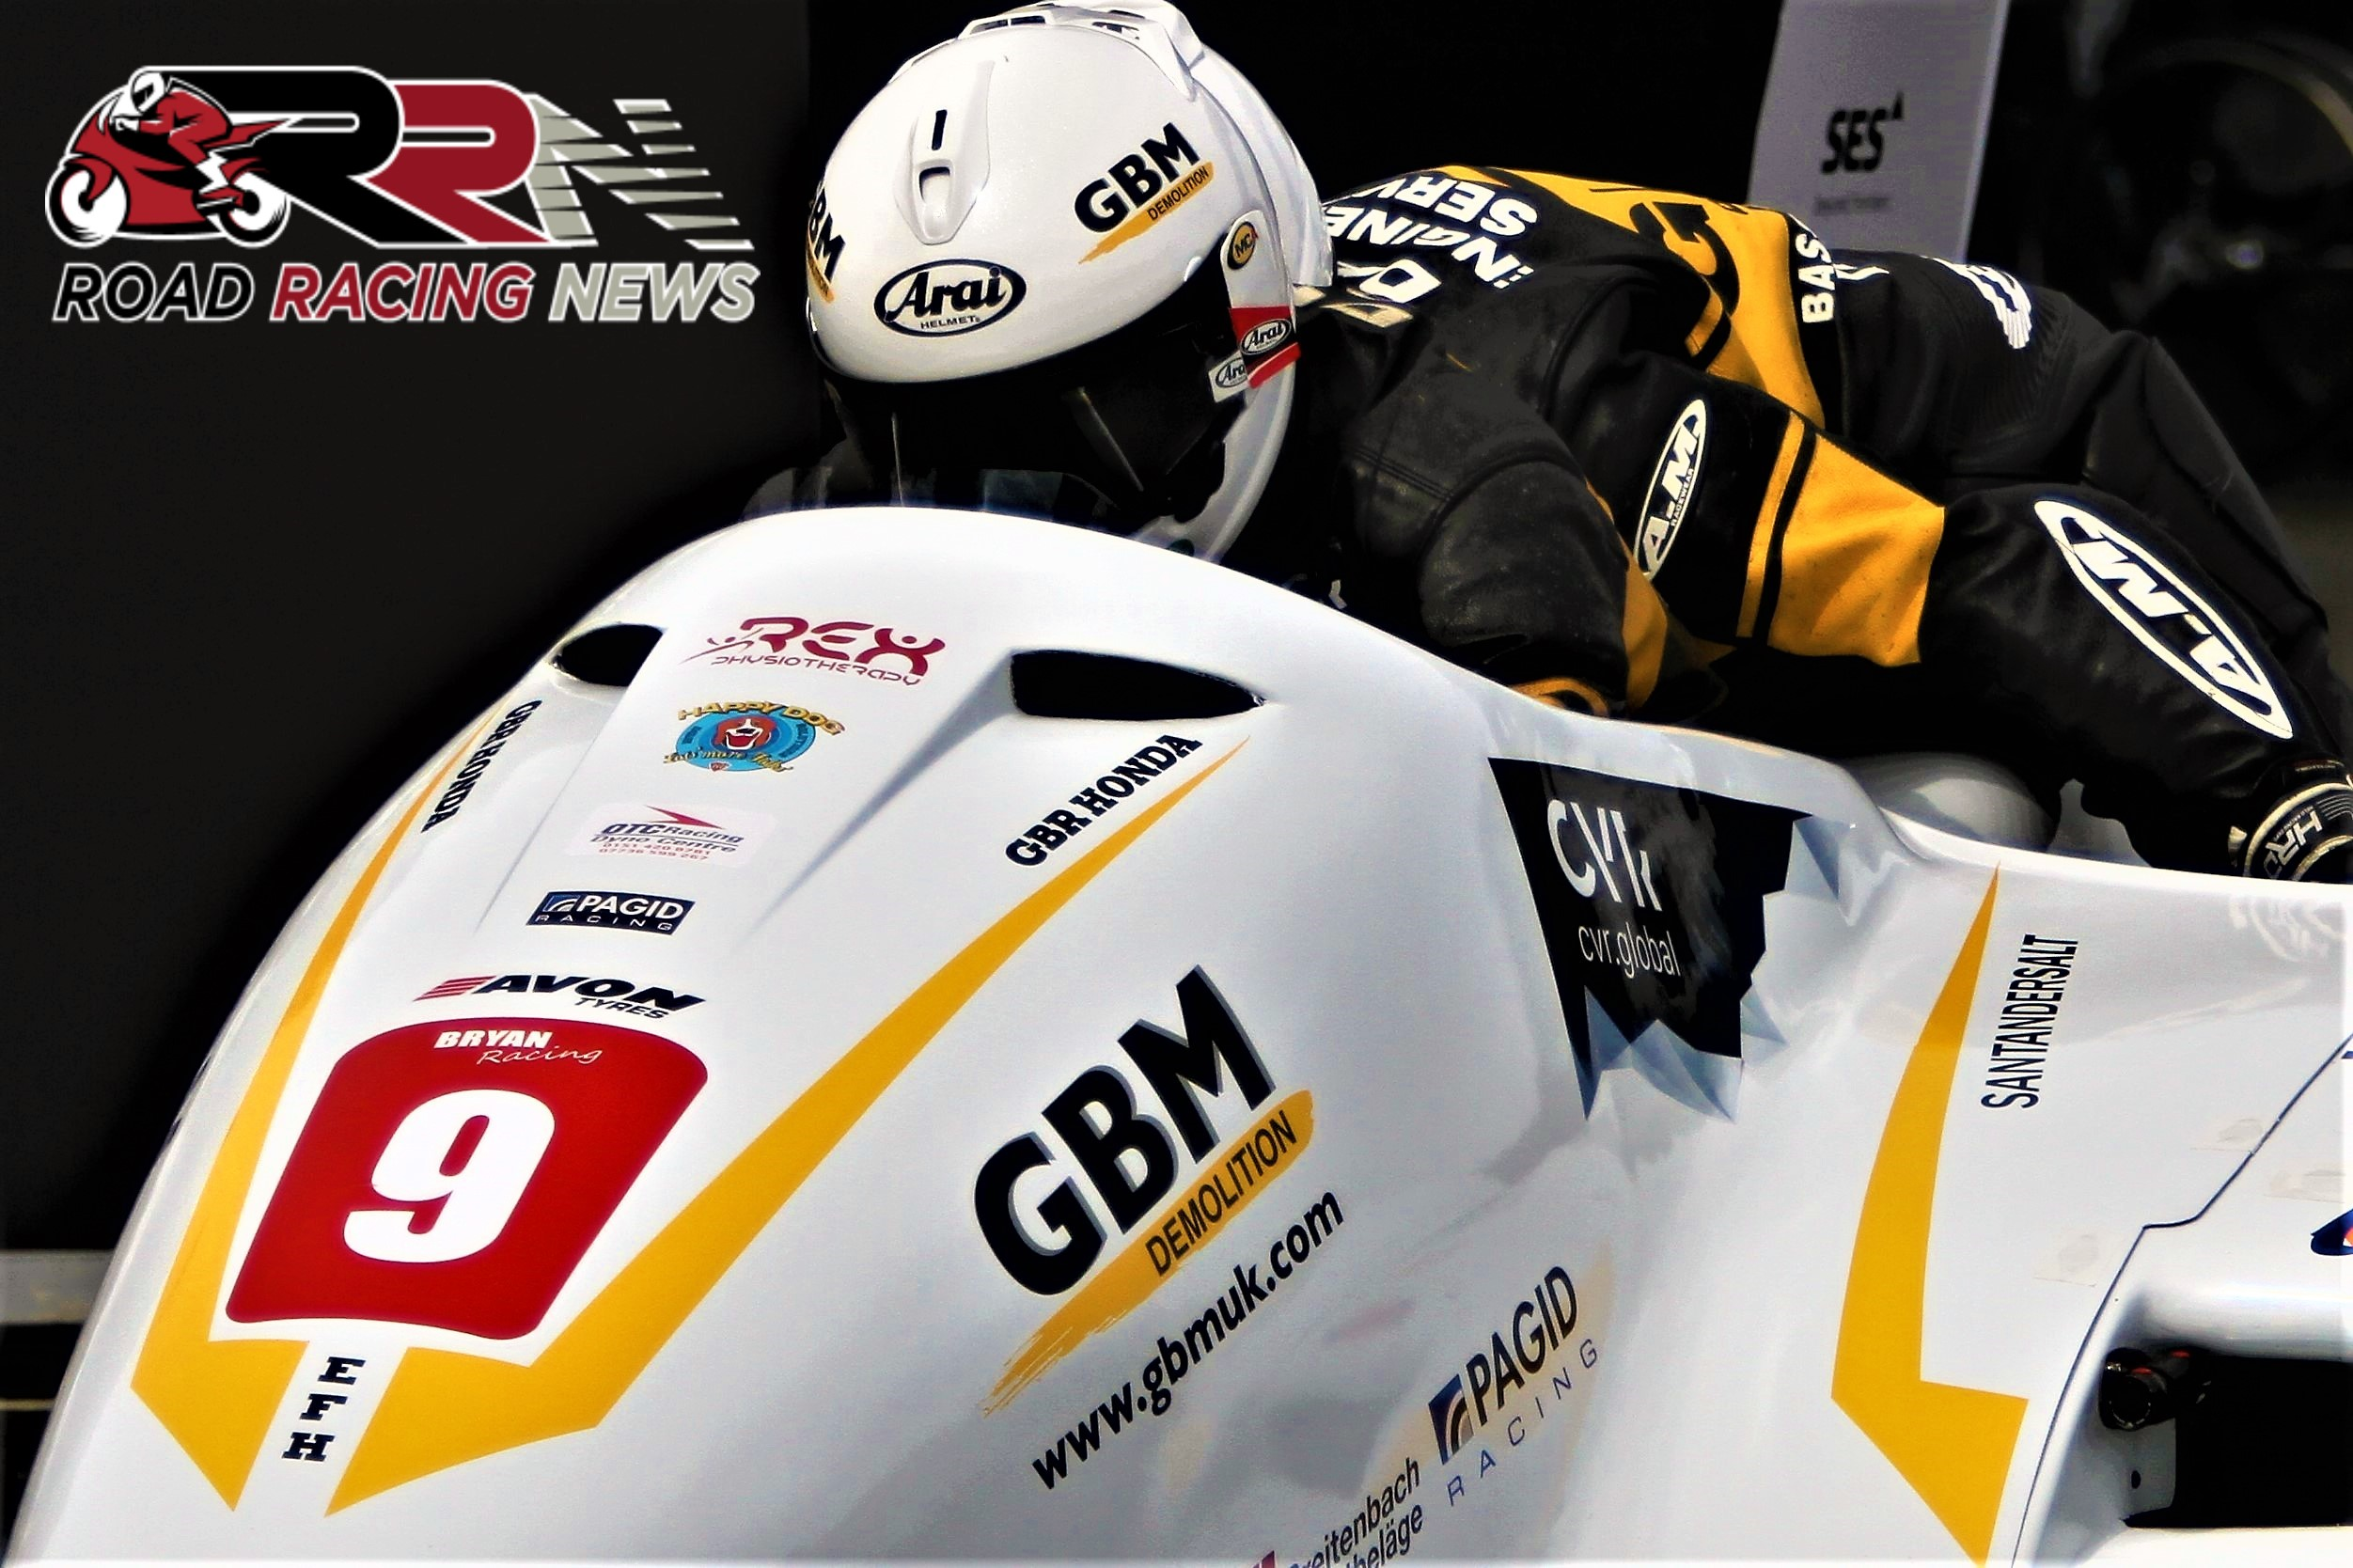 Cemetery Circuit Races: Bryan/Hyde Dominate F1/F2 Sidecar Encounters